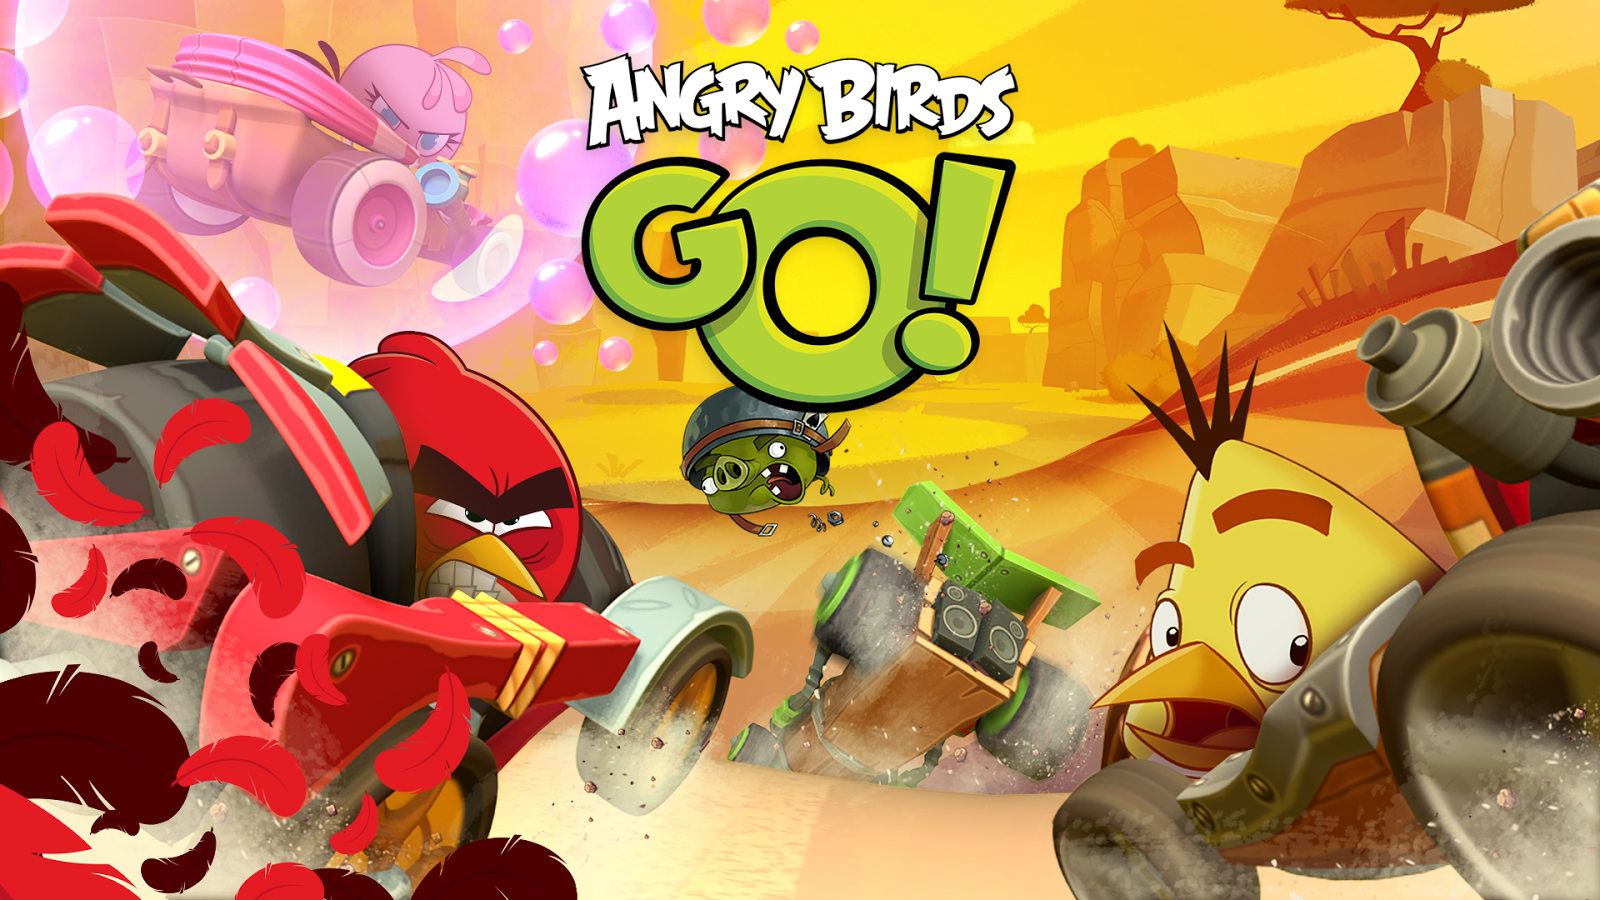 High Resolution Wallpaper | Angry Birds 1600x900 px